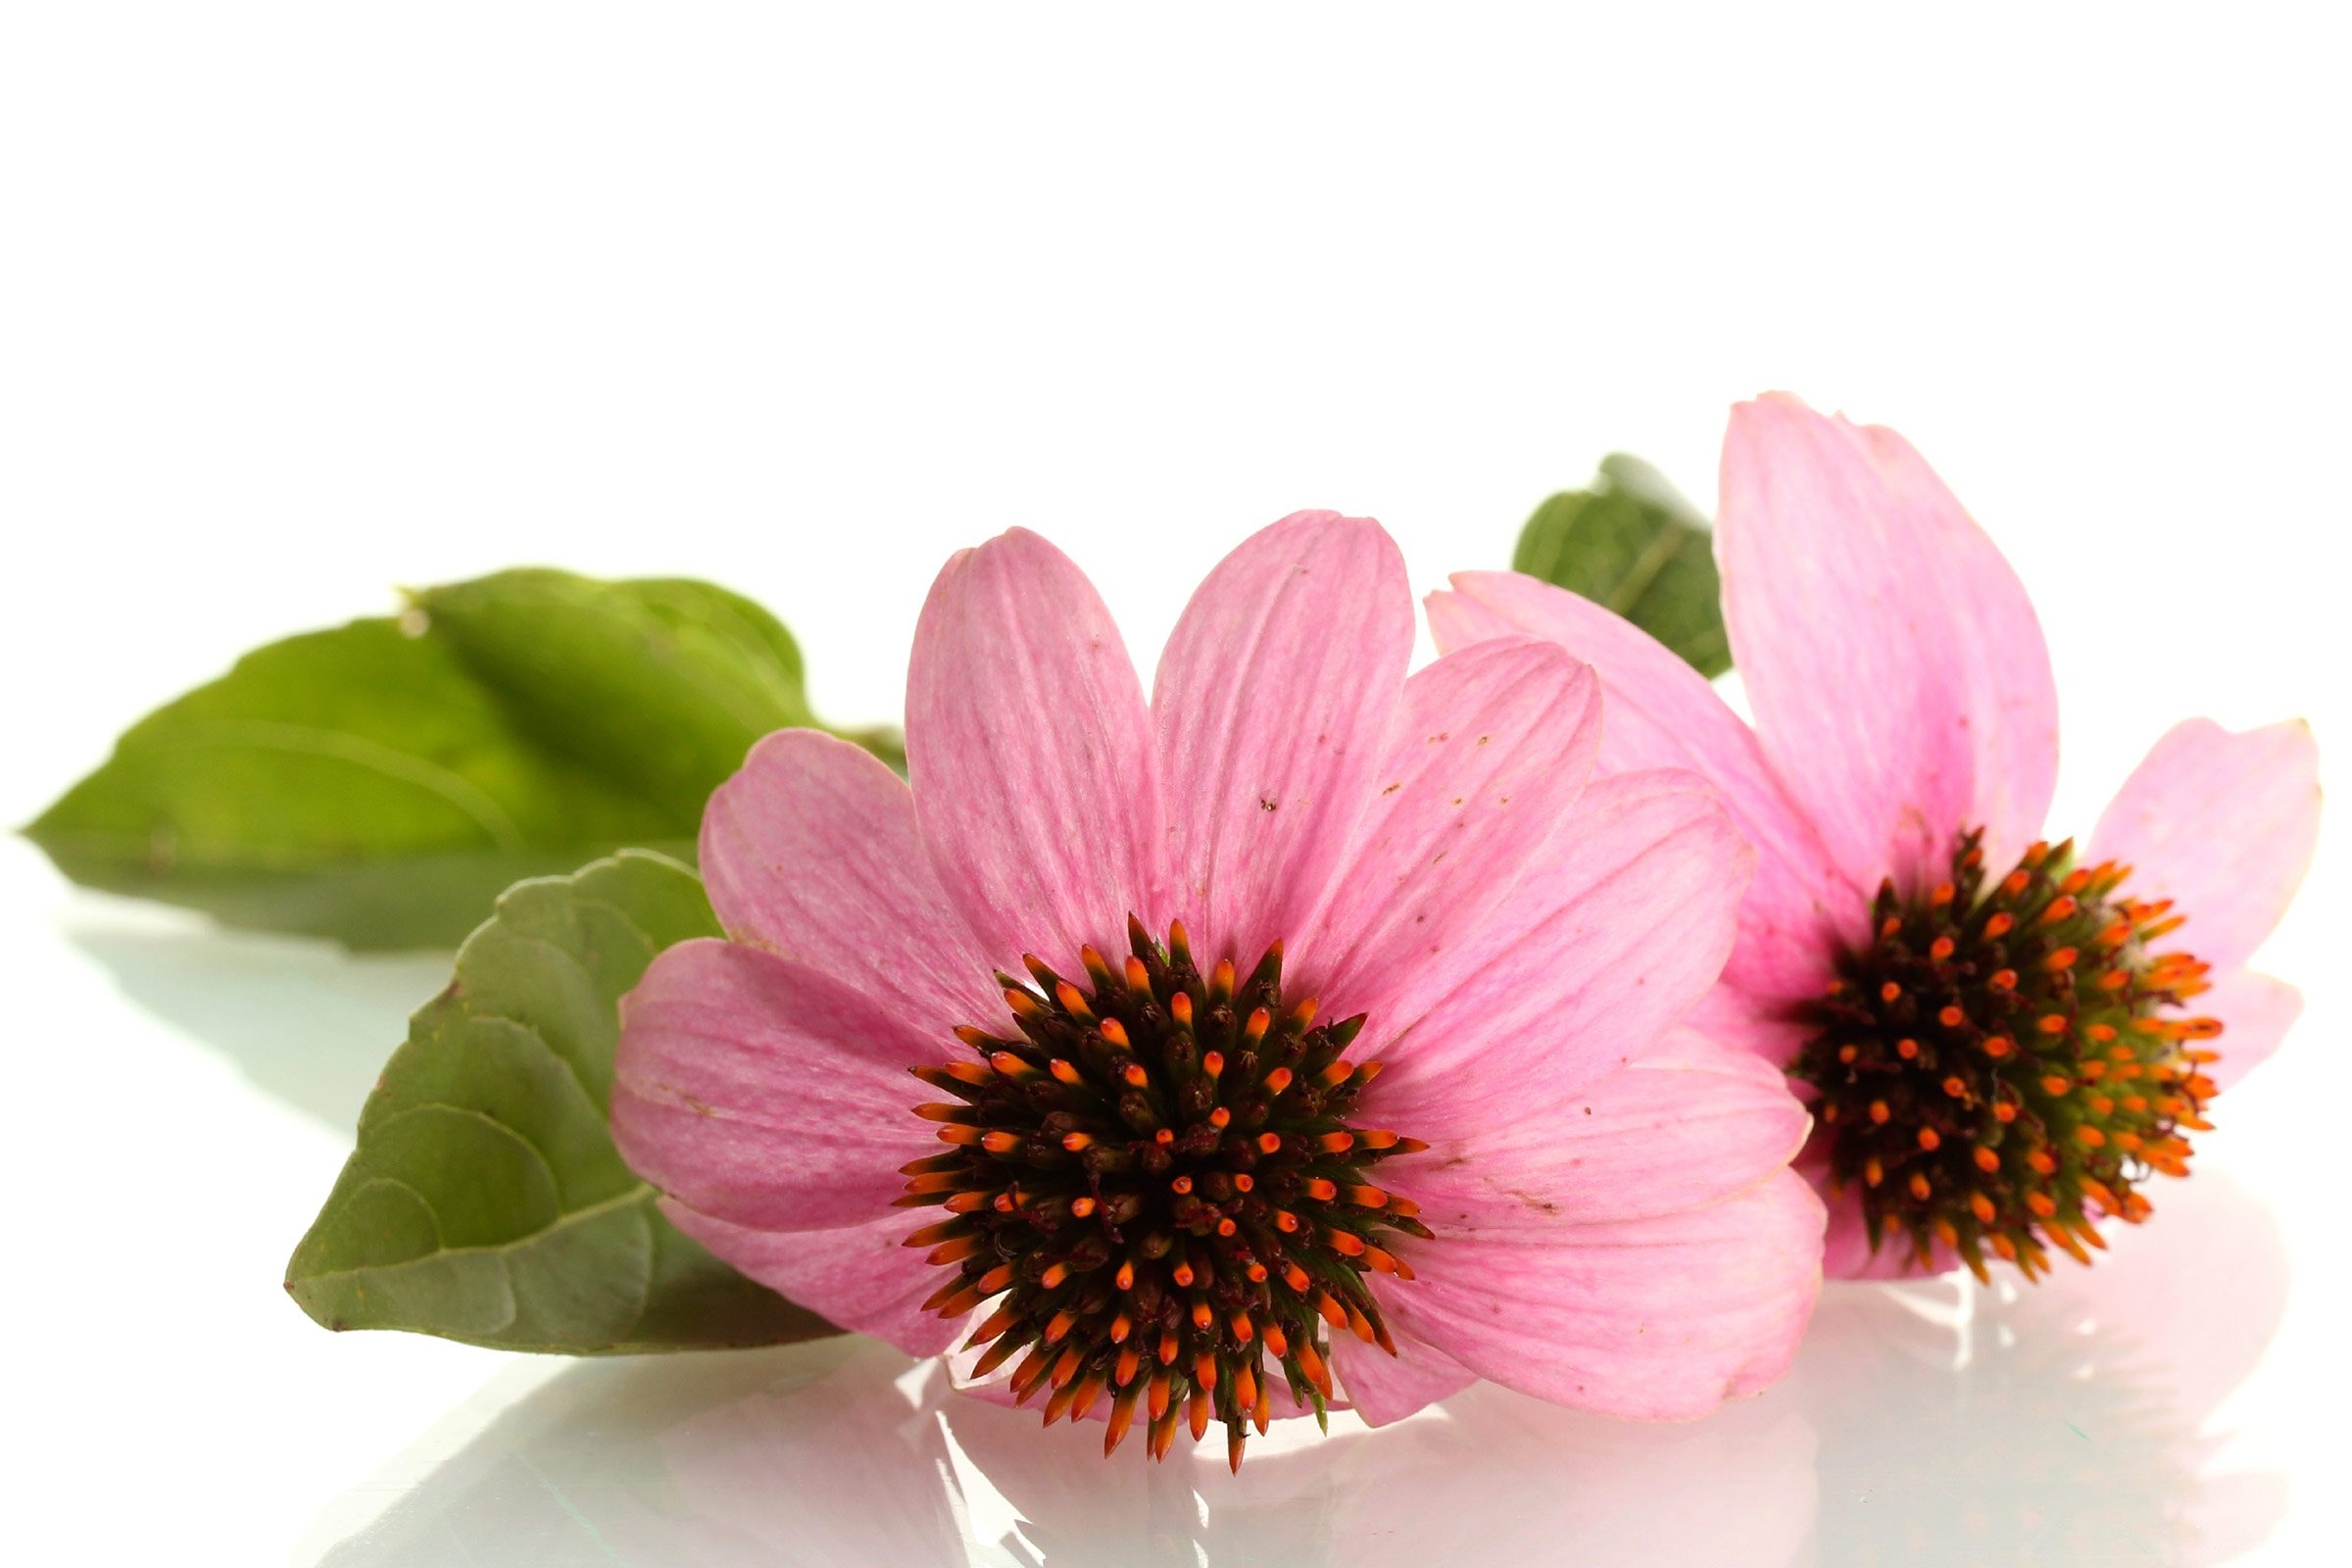 Sore throat remedy: Echinacea and water